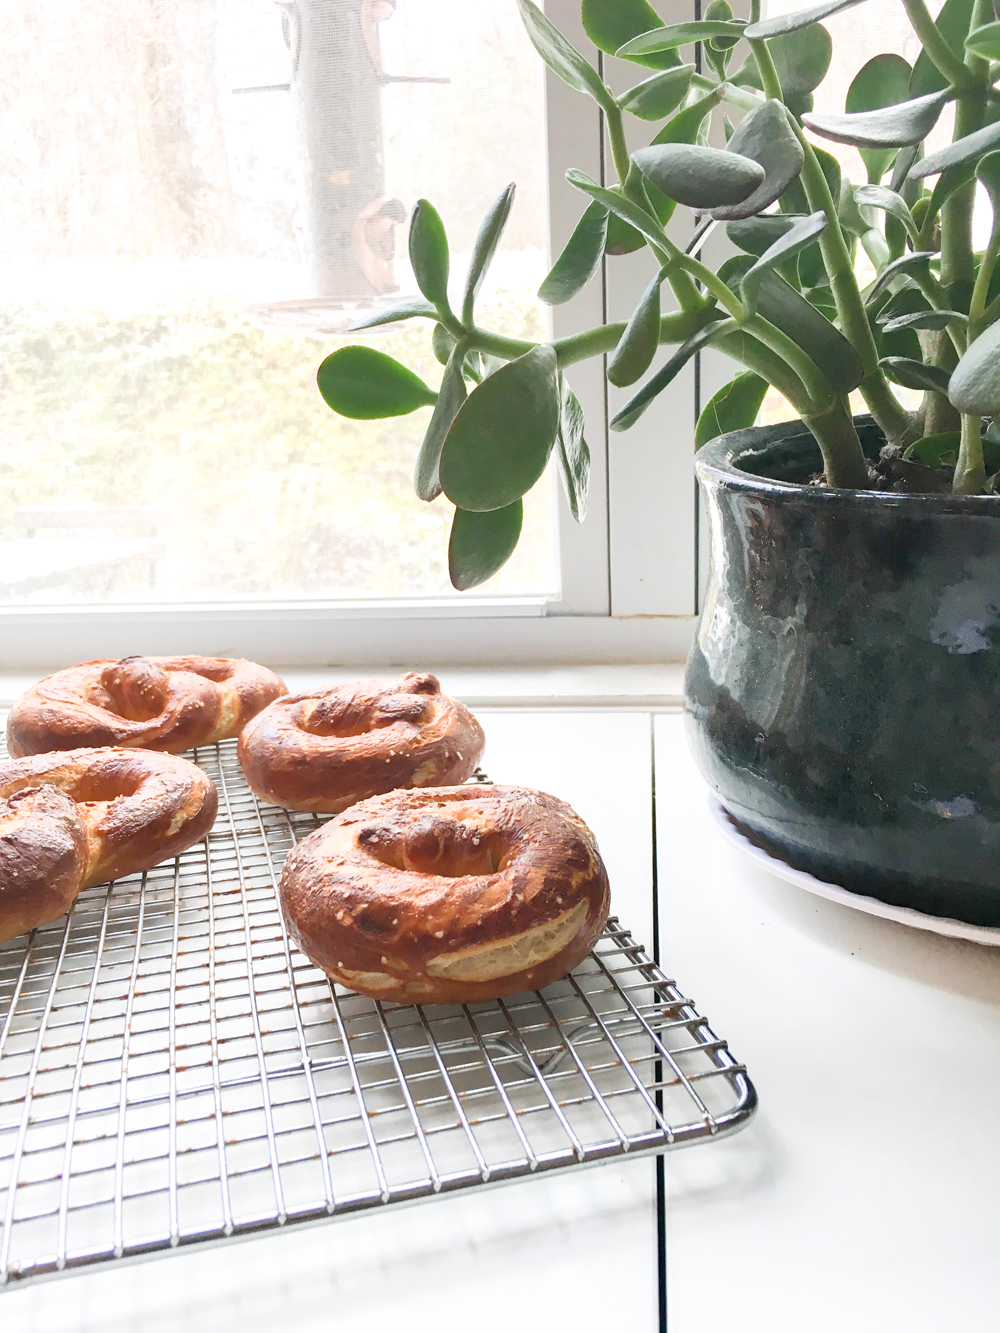 Homemade Soft Pretzel Recipe | Gather Goods Co